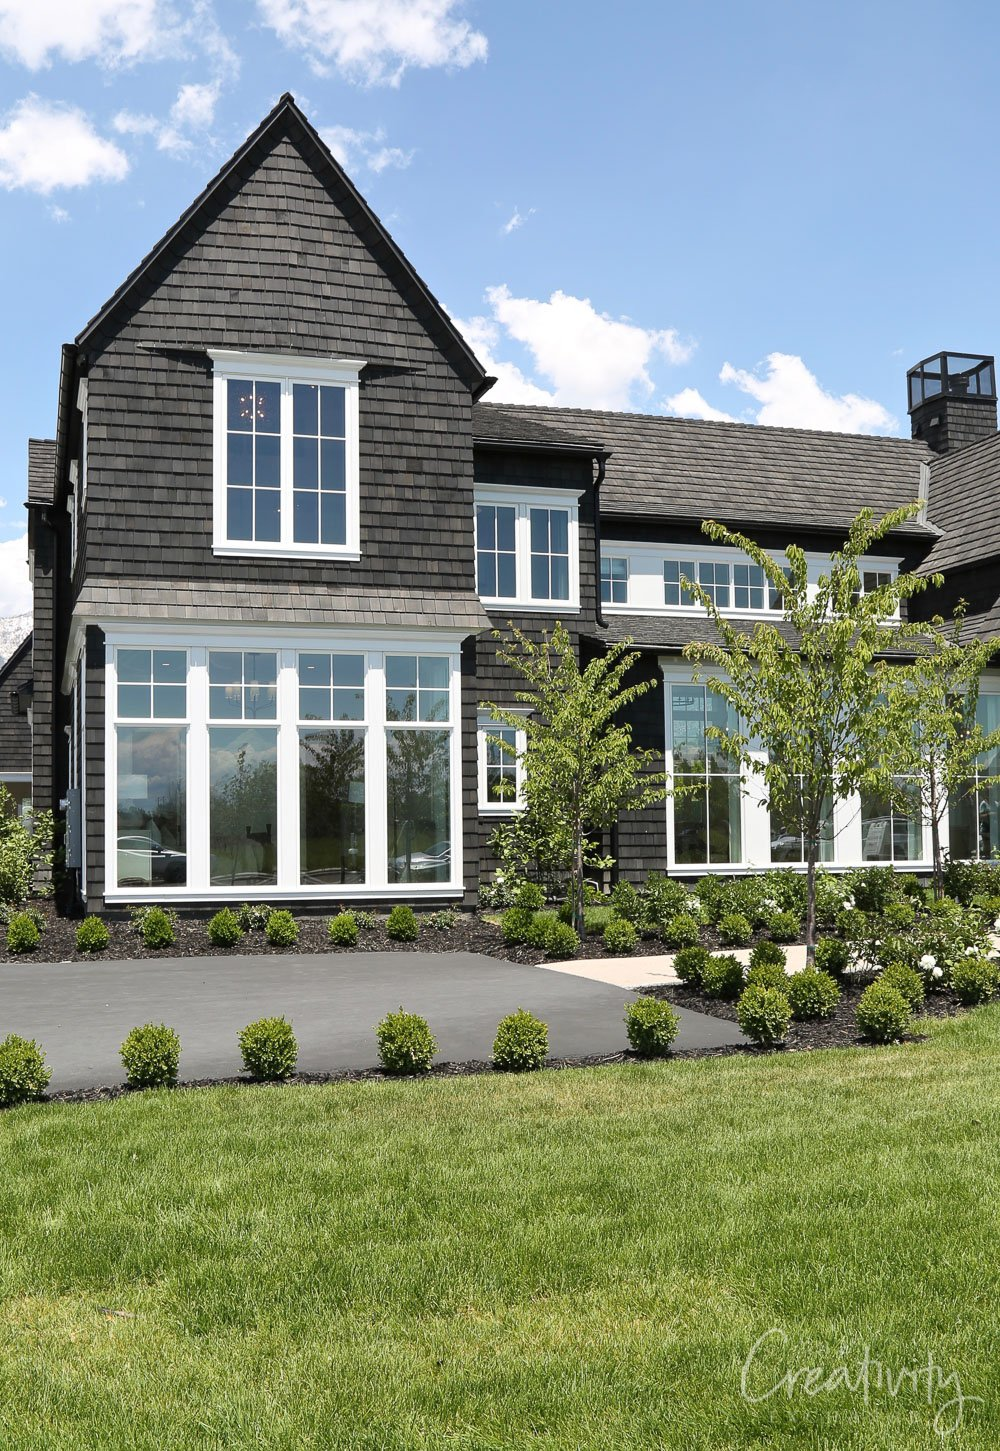 Charcoal shake Cape Cod style exterior